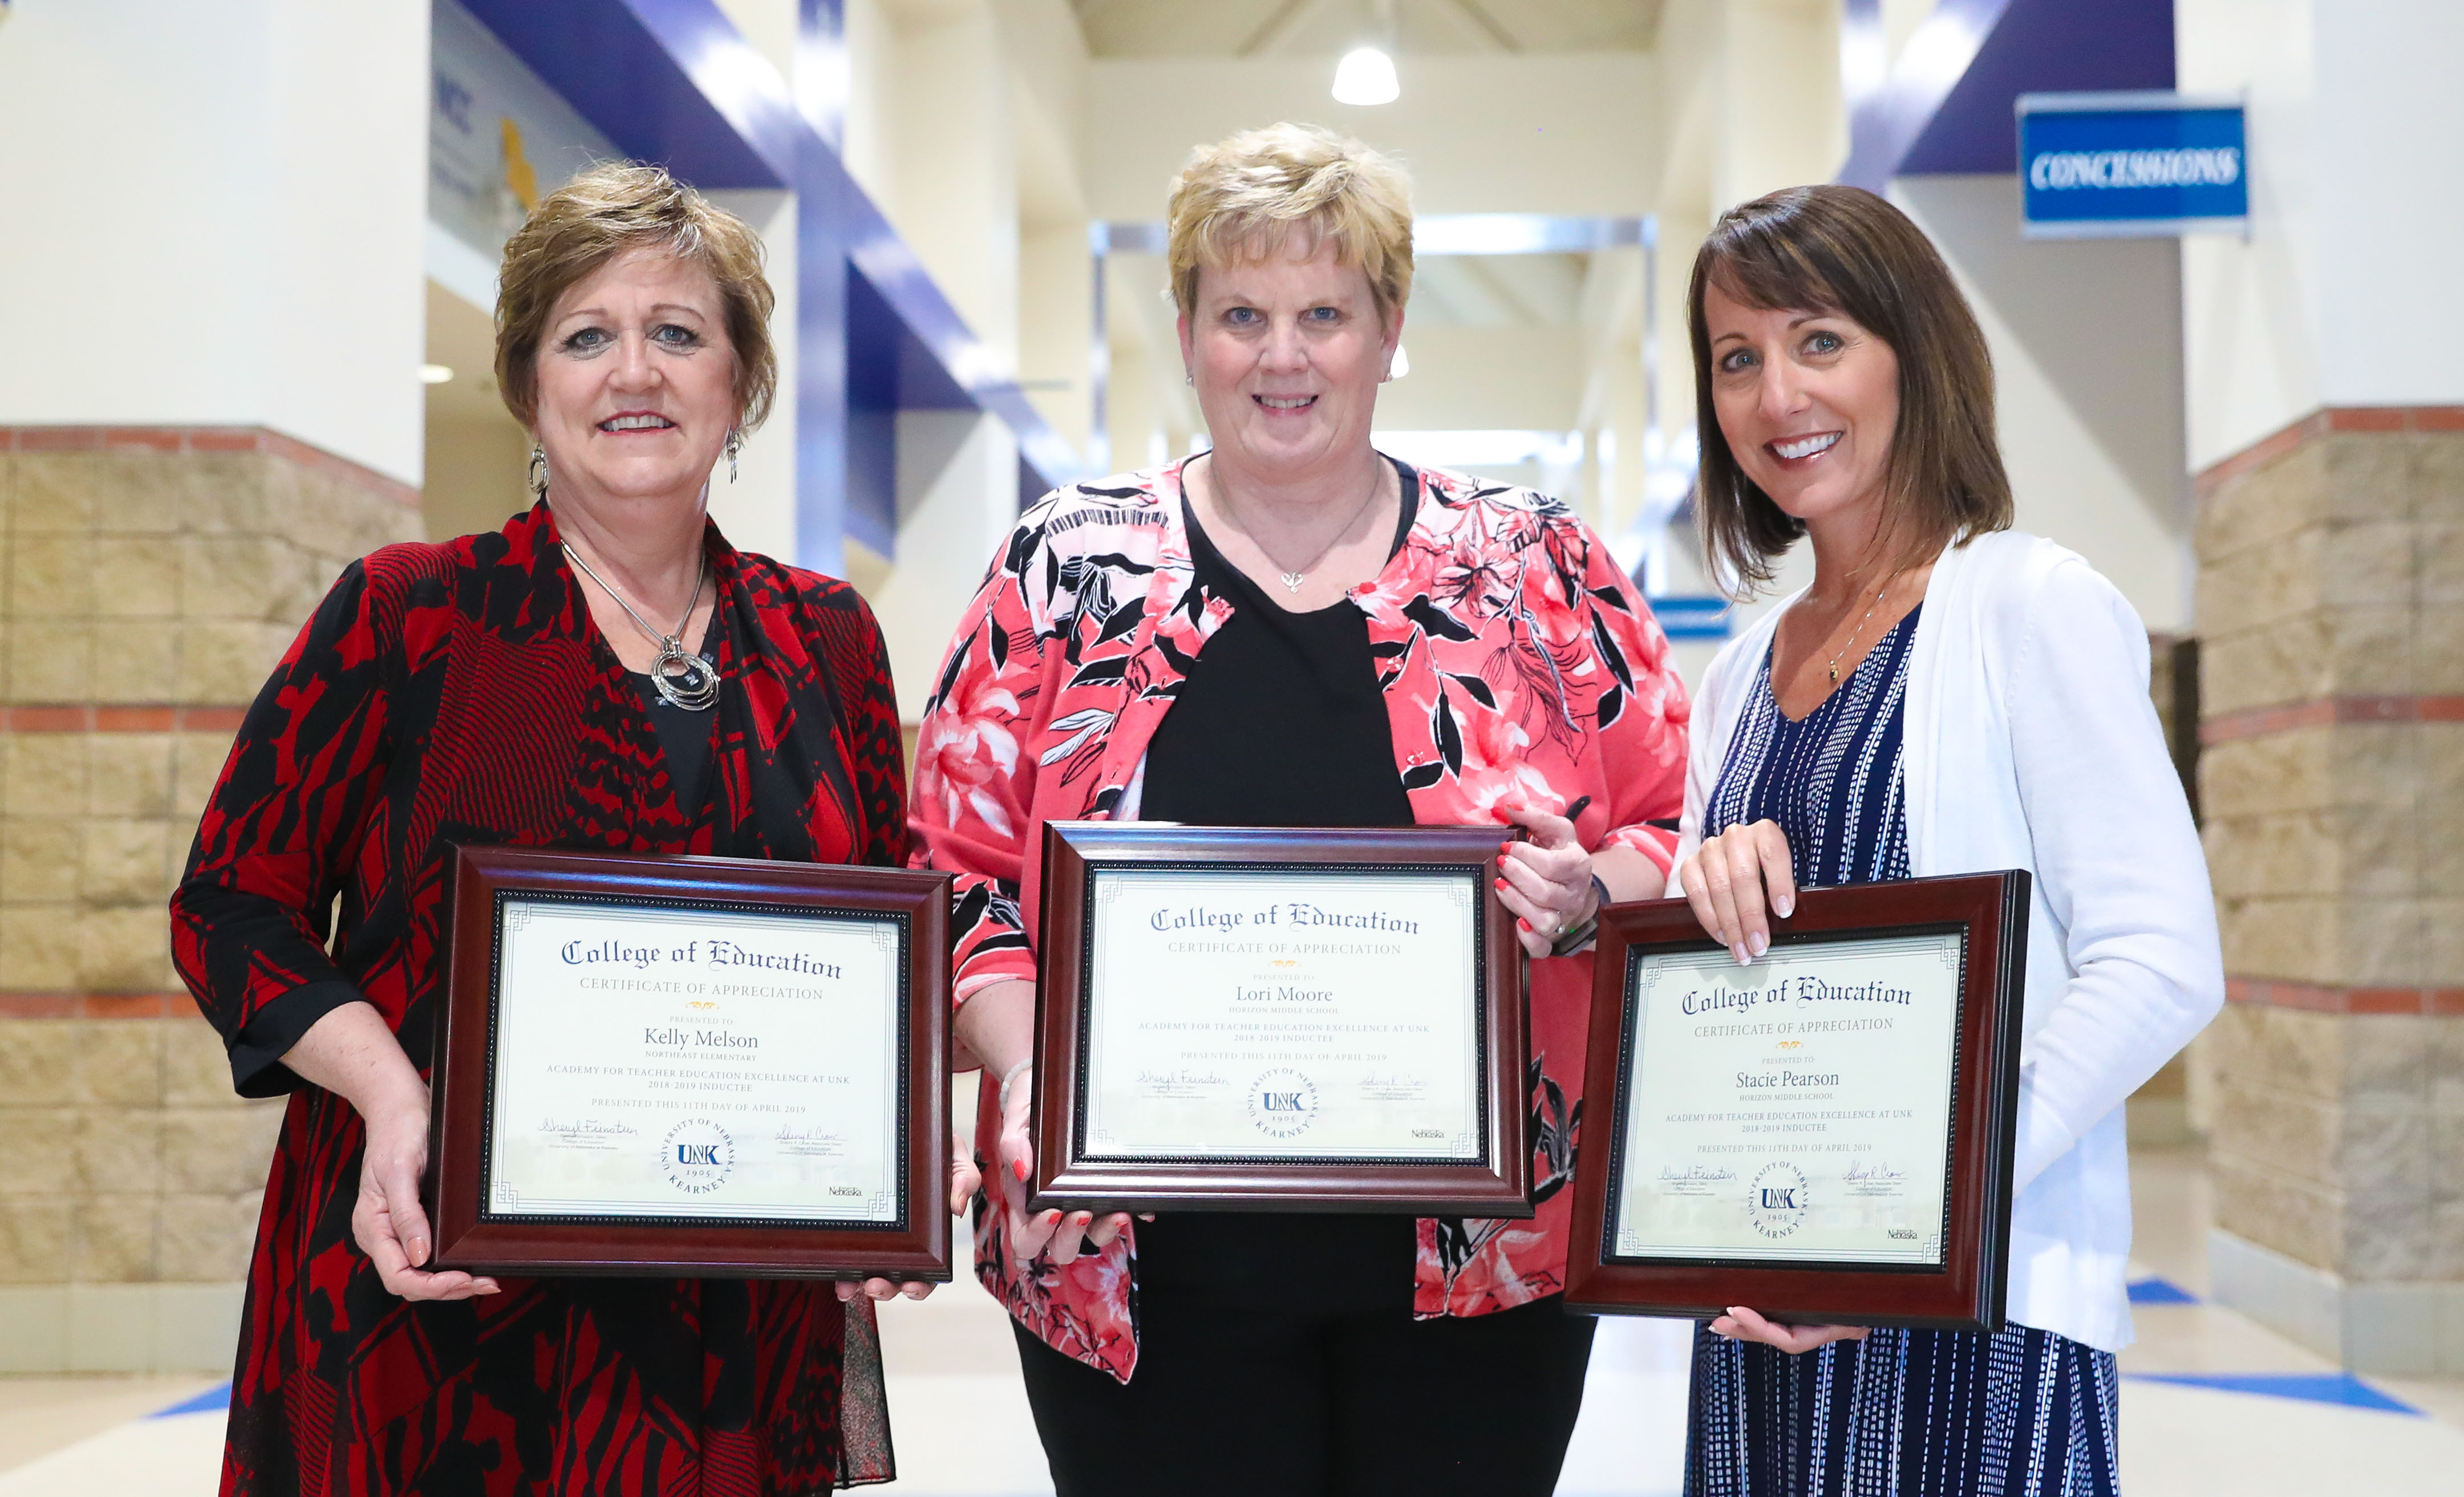 Kearney Public Schools educators, from left, Kelly Melson, Lori Moore and Stacie Pearson are the 2019 inductees into UNK's Academy for Teacher Education Excellence. They were recognized Wednesday during a ceremony on the UNK campus. (Photo by Corbey R. Dorsey, UNK Communications)